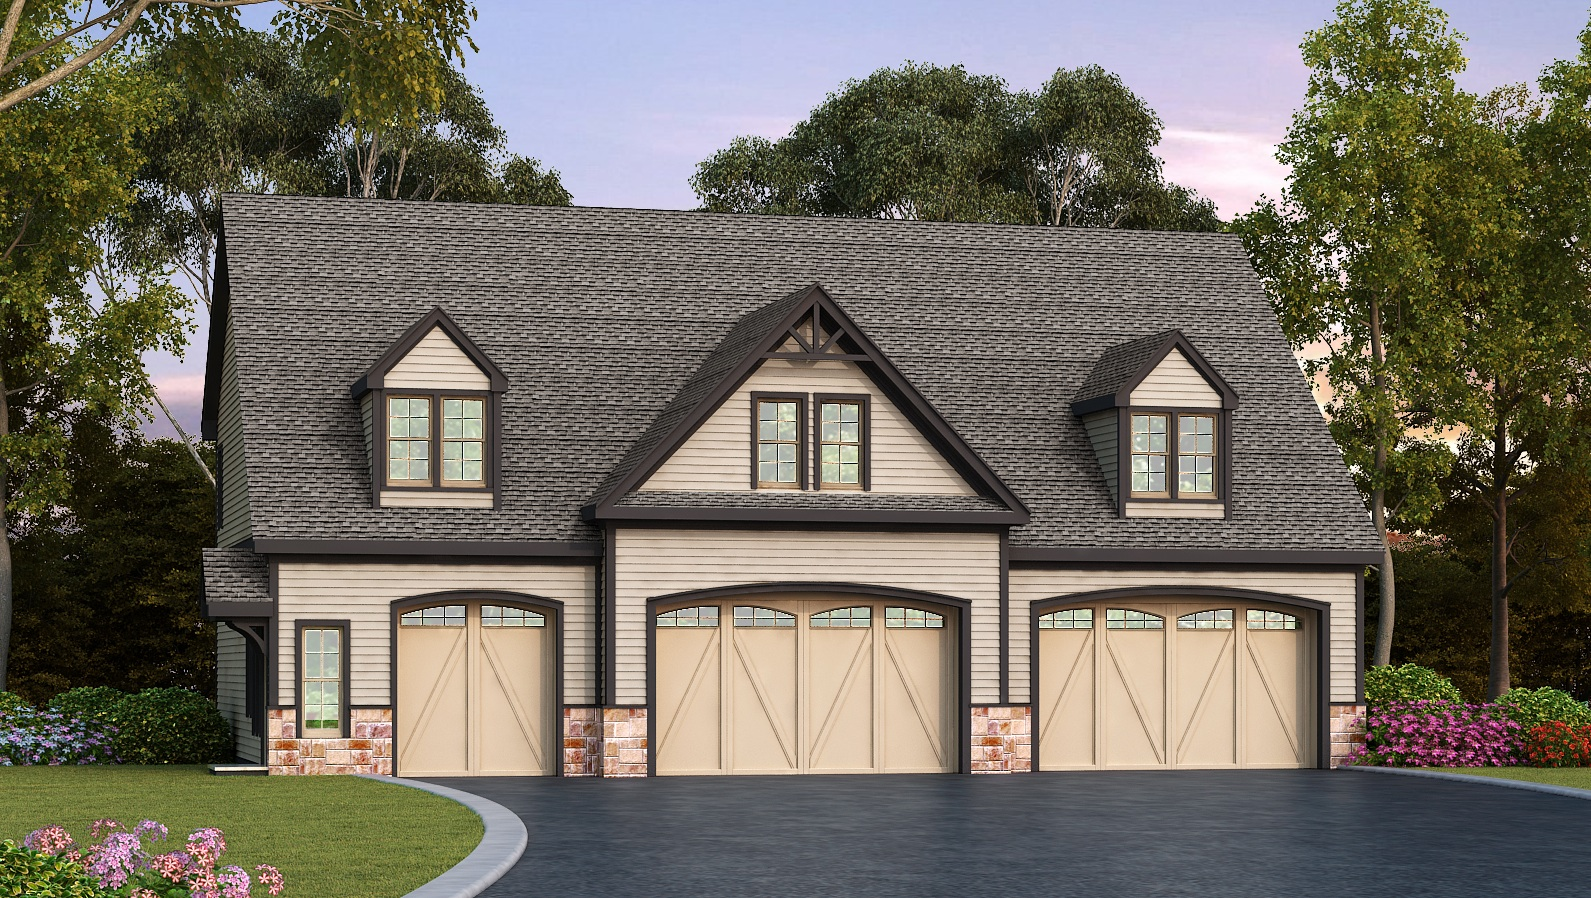 Residential 5 car garage plan 29870rl 2nd floor master for Garage architectural plans